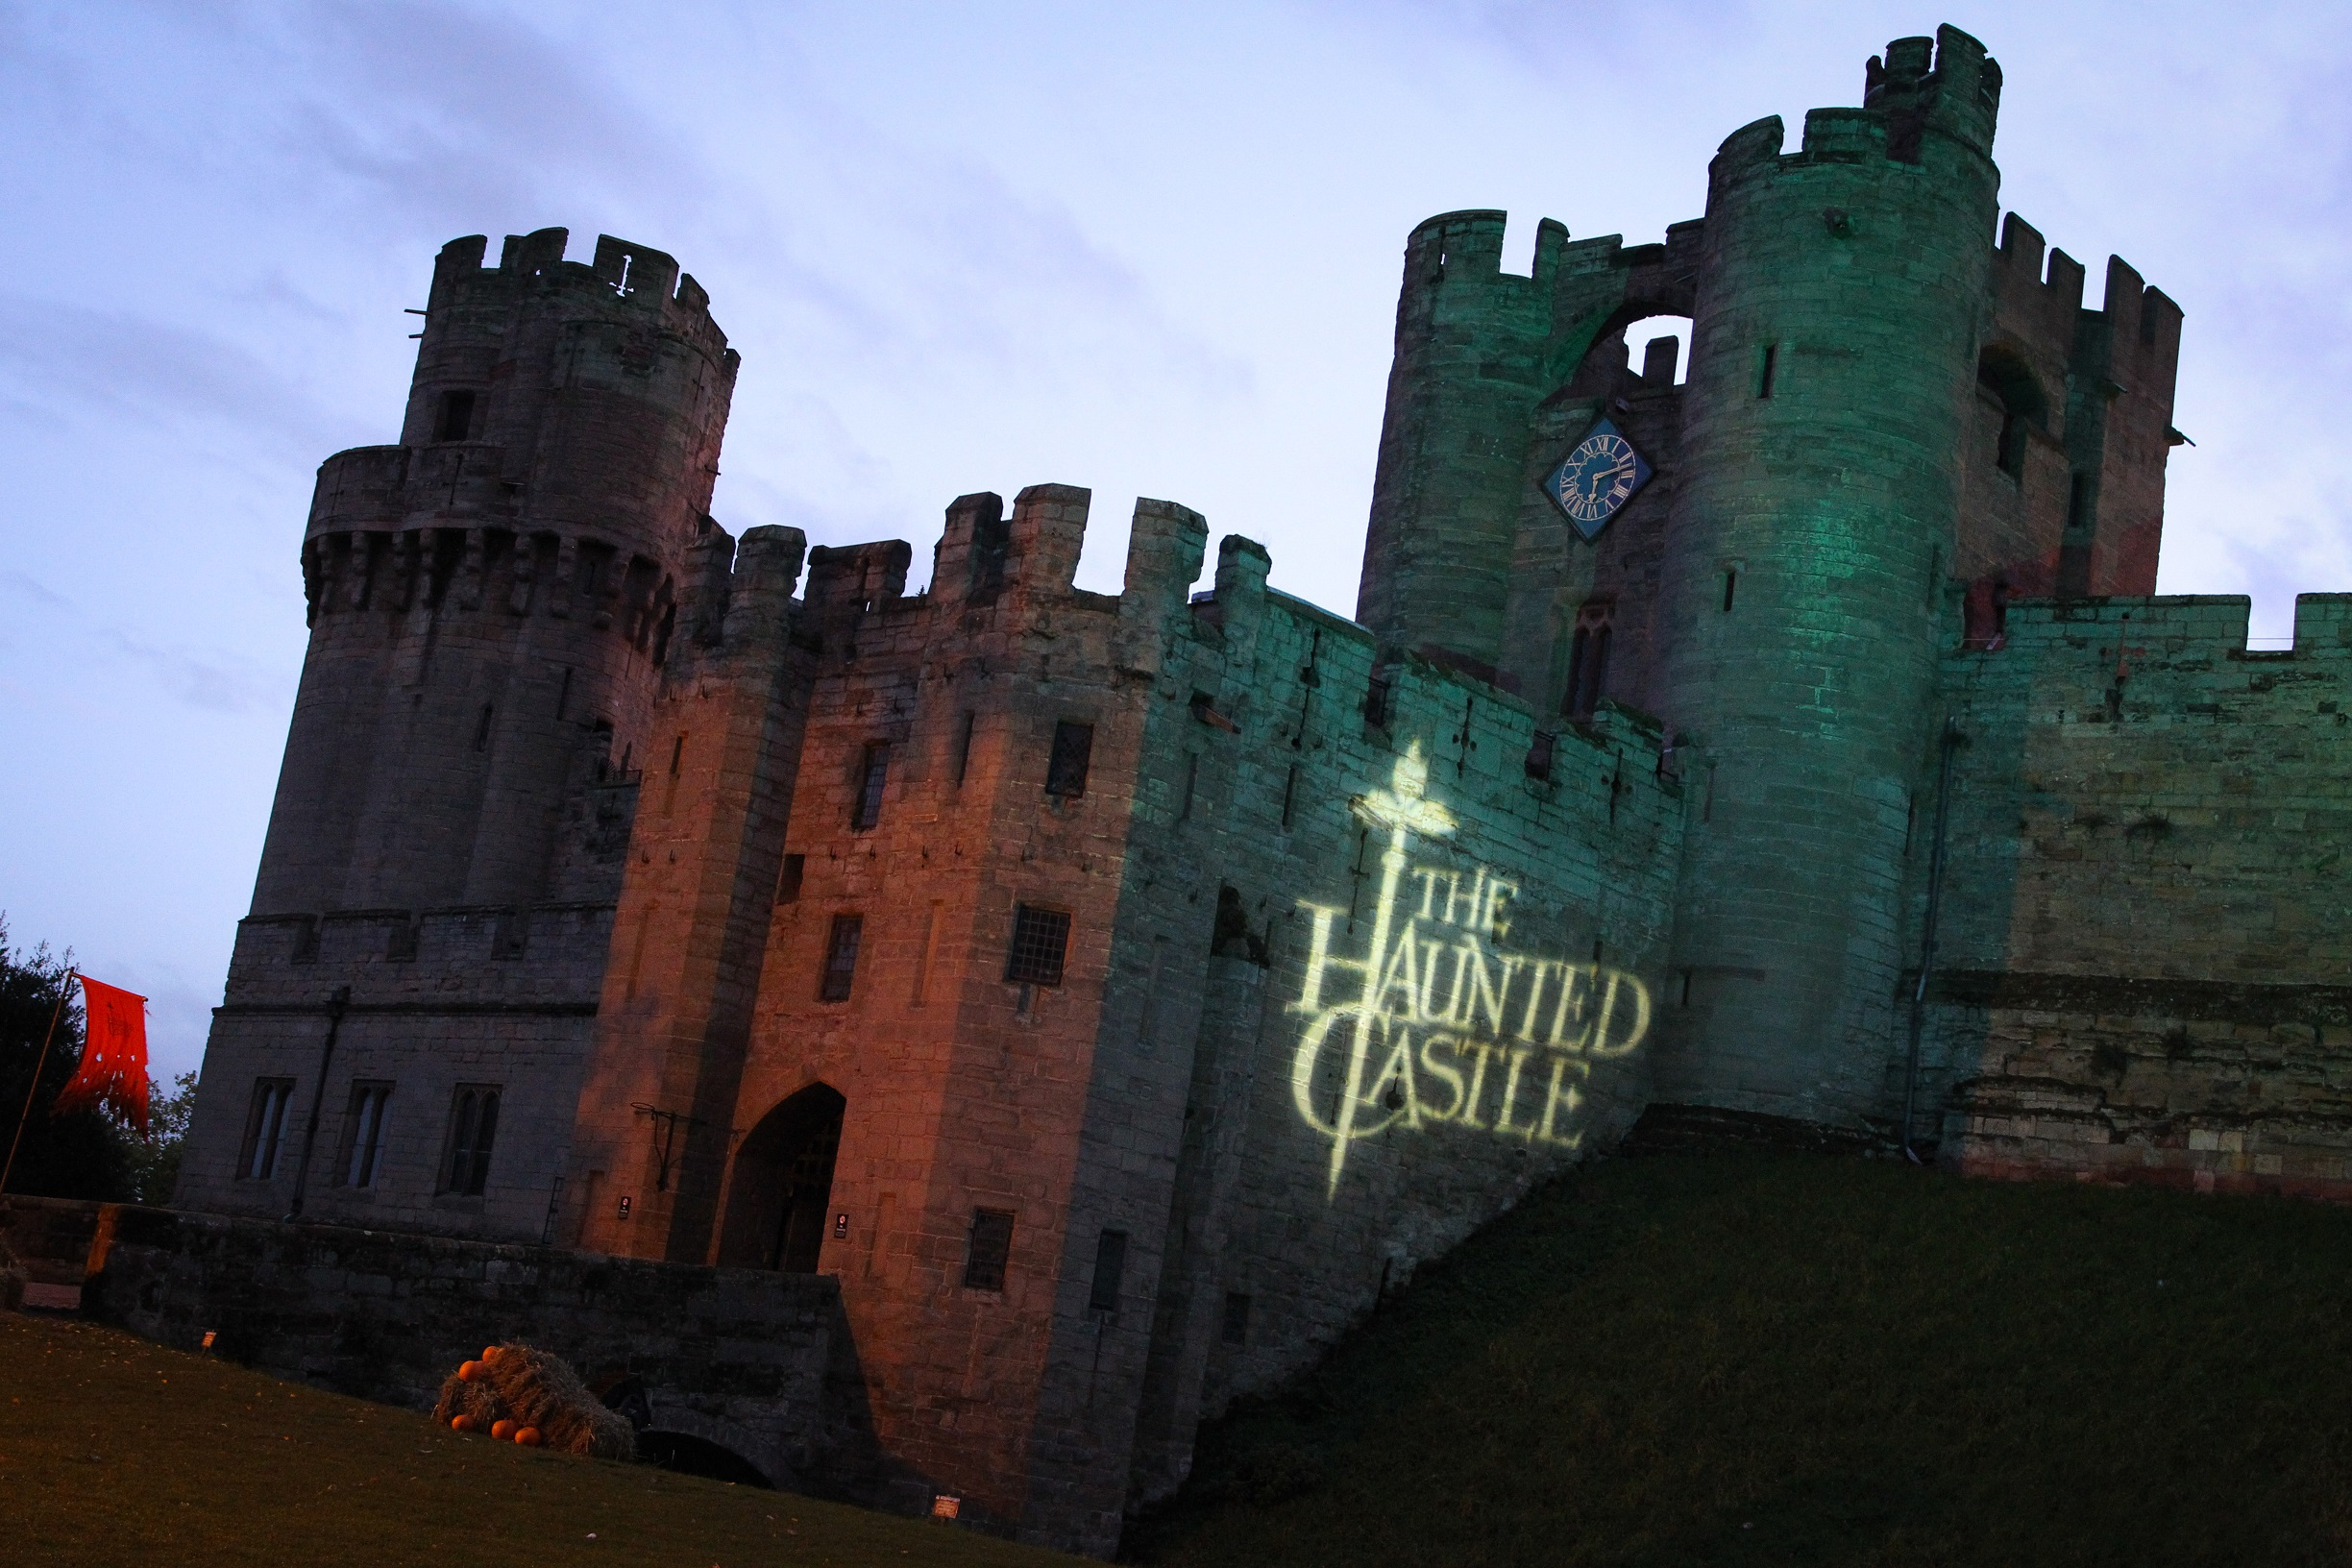 I went on a ghost hunt in a haunted castle – and this is what I learnt